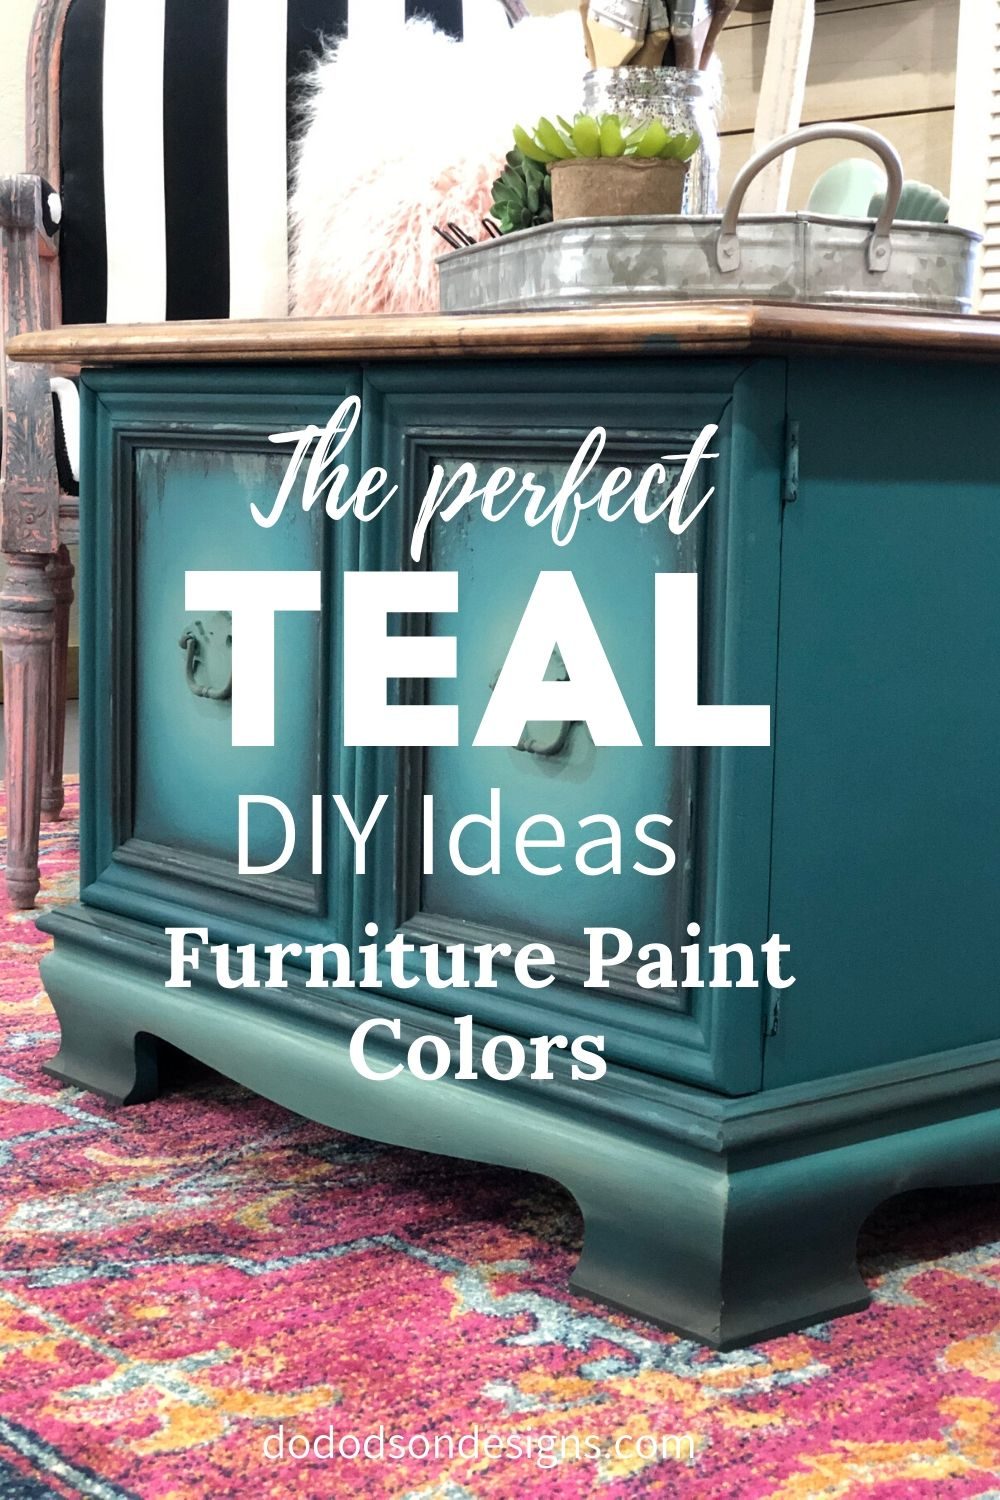 How I Got The Perfect Teal Mixing Furniture Paint Colors